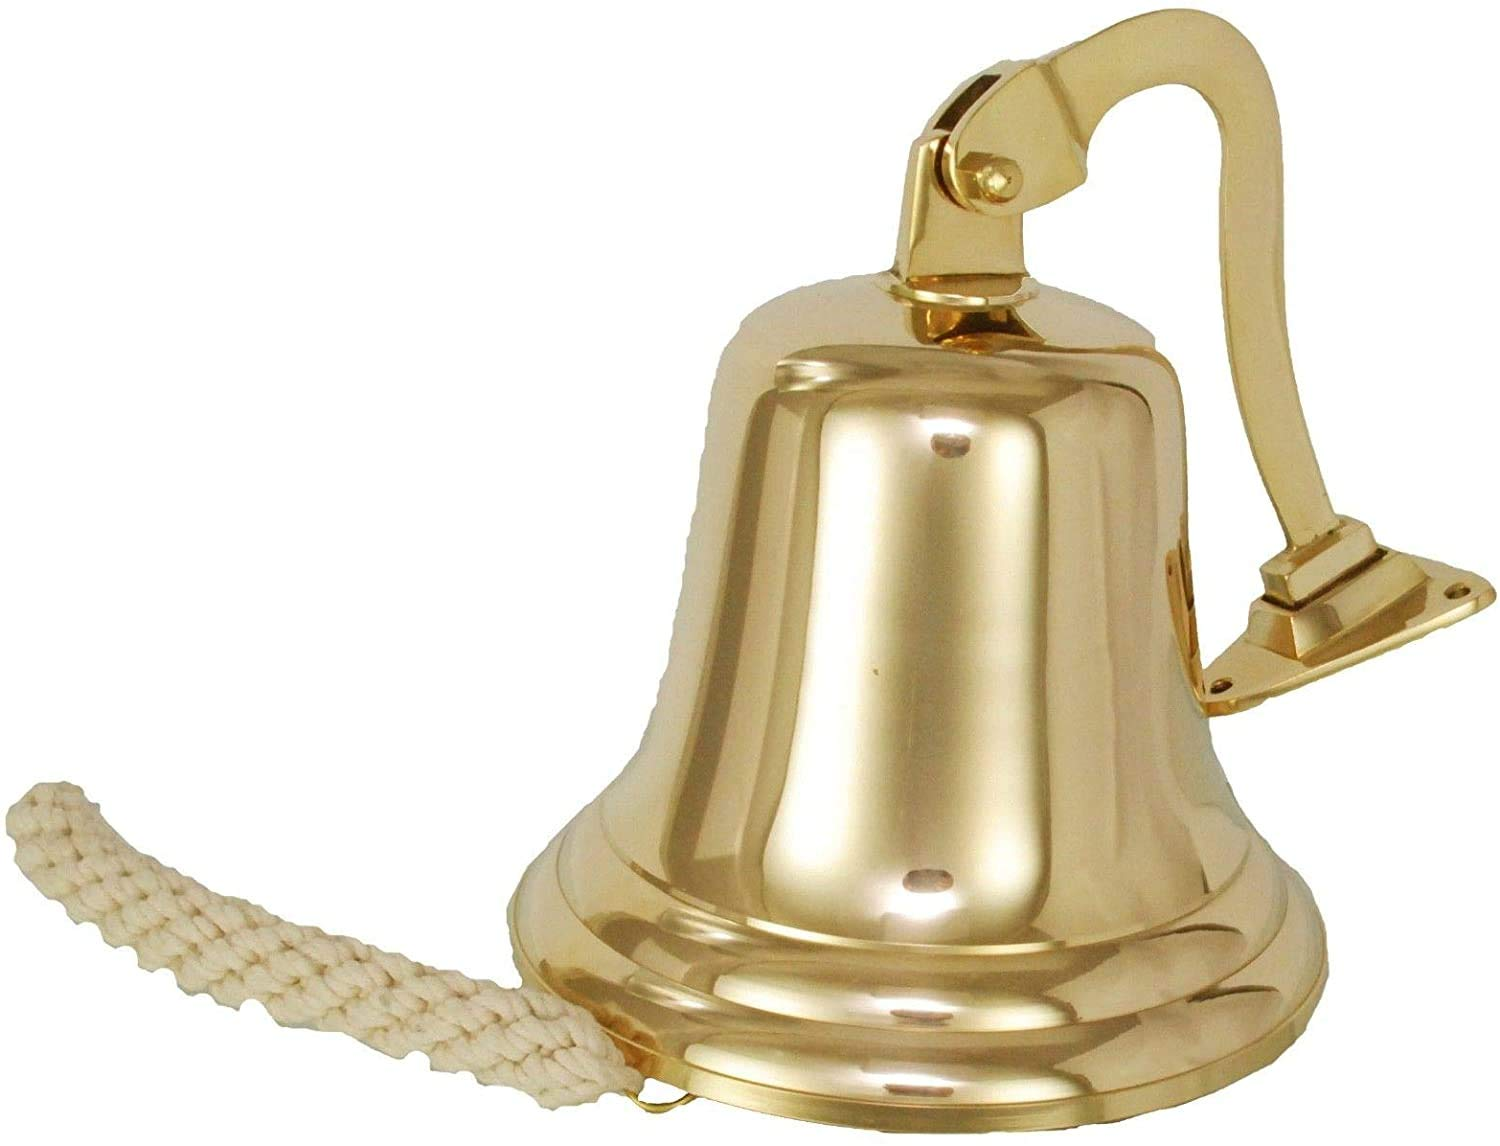 Brass Bell Vintage Antique Brass Hanging Ship Bell Brass Ship Bell Antique for School Dinner Pub /& Reception Home Decor Wall Mounted